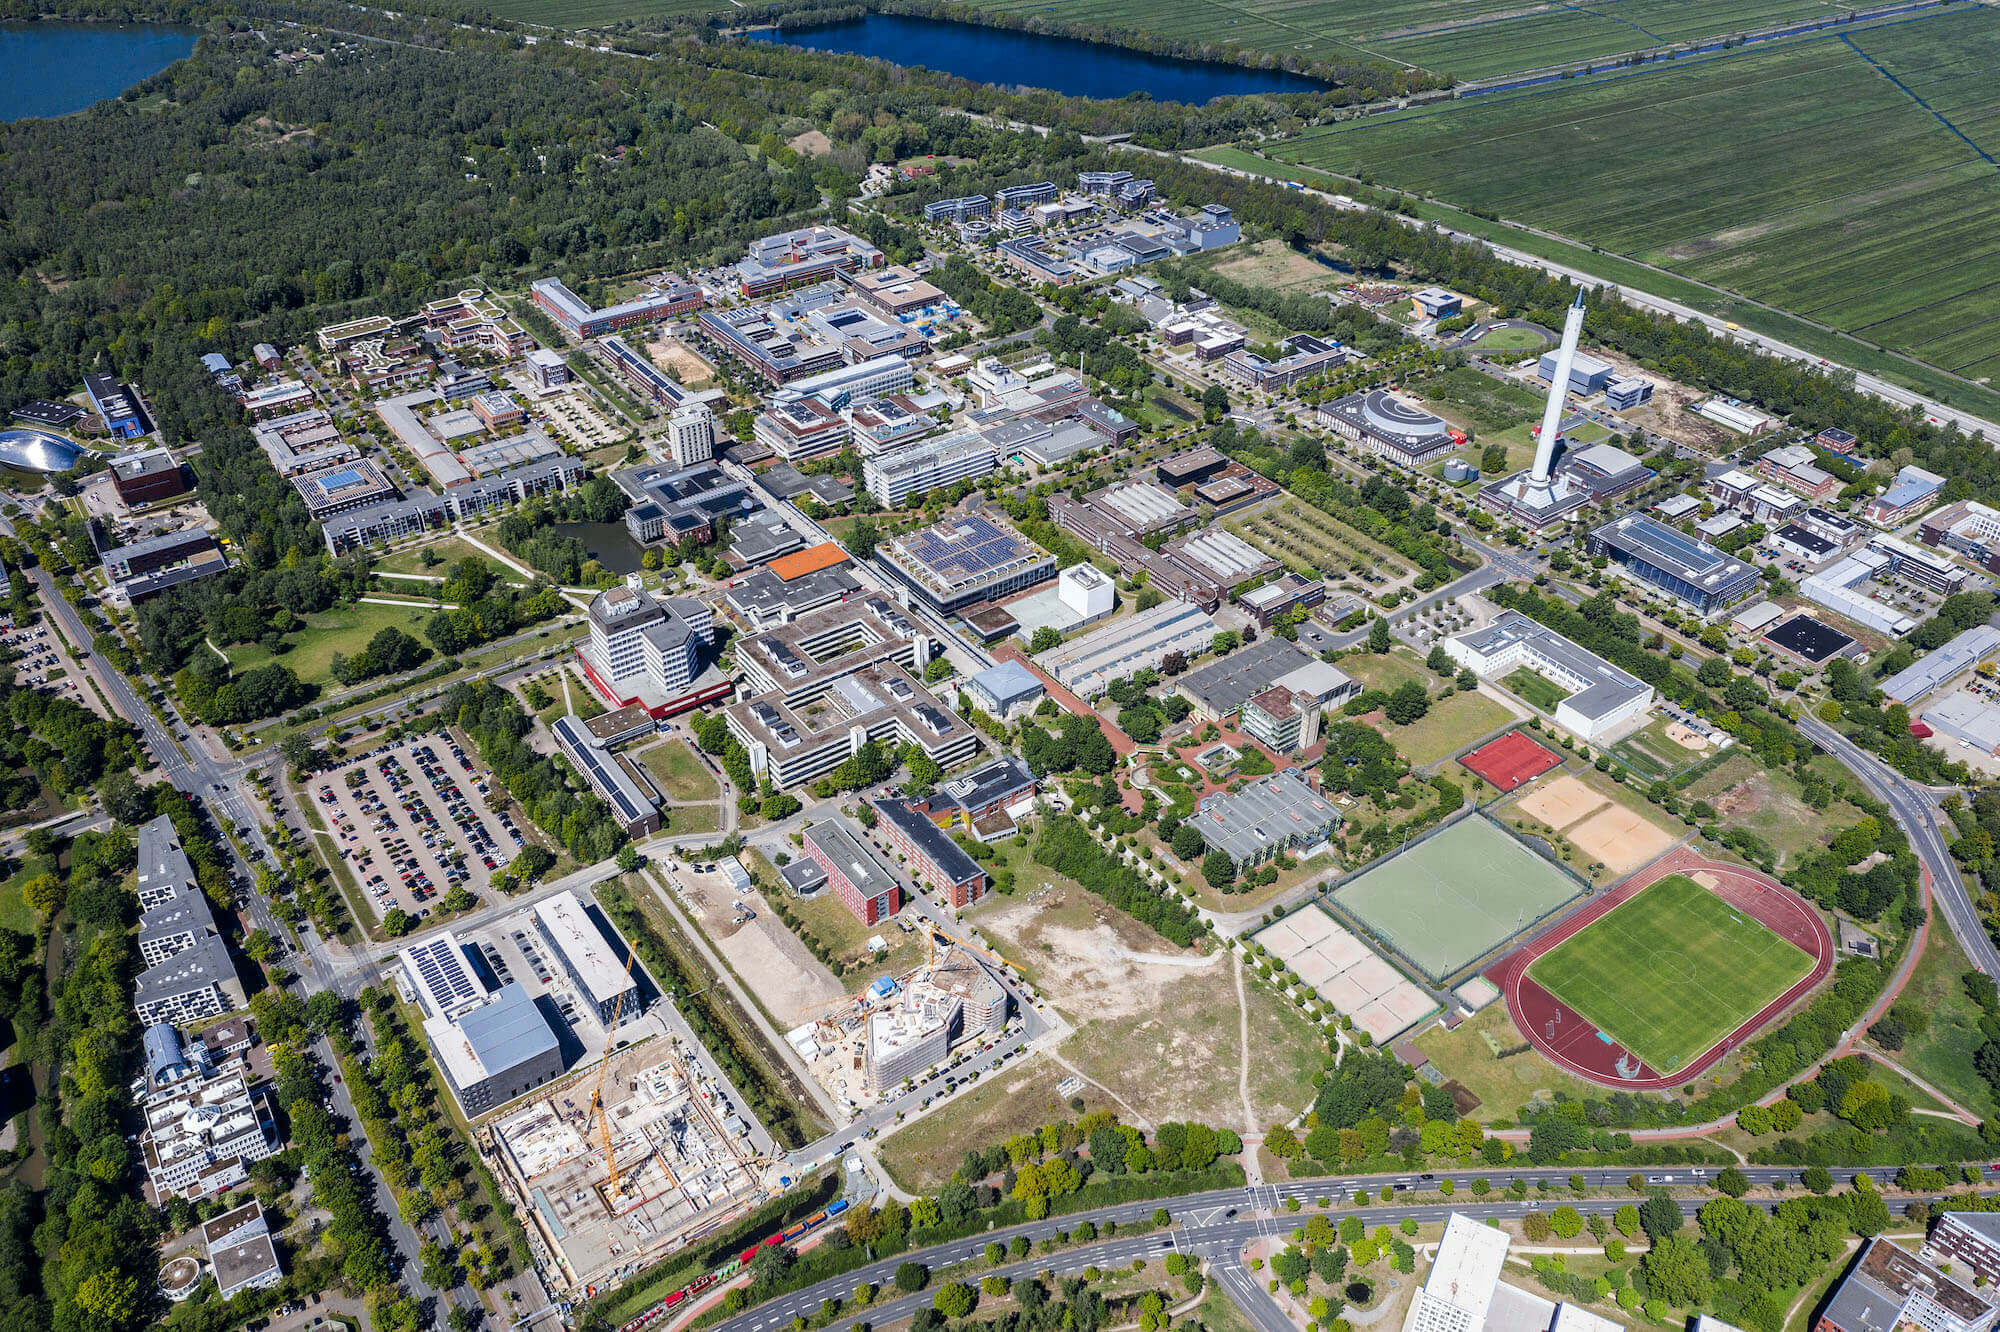 Campus overview